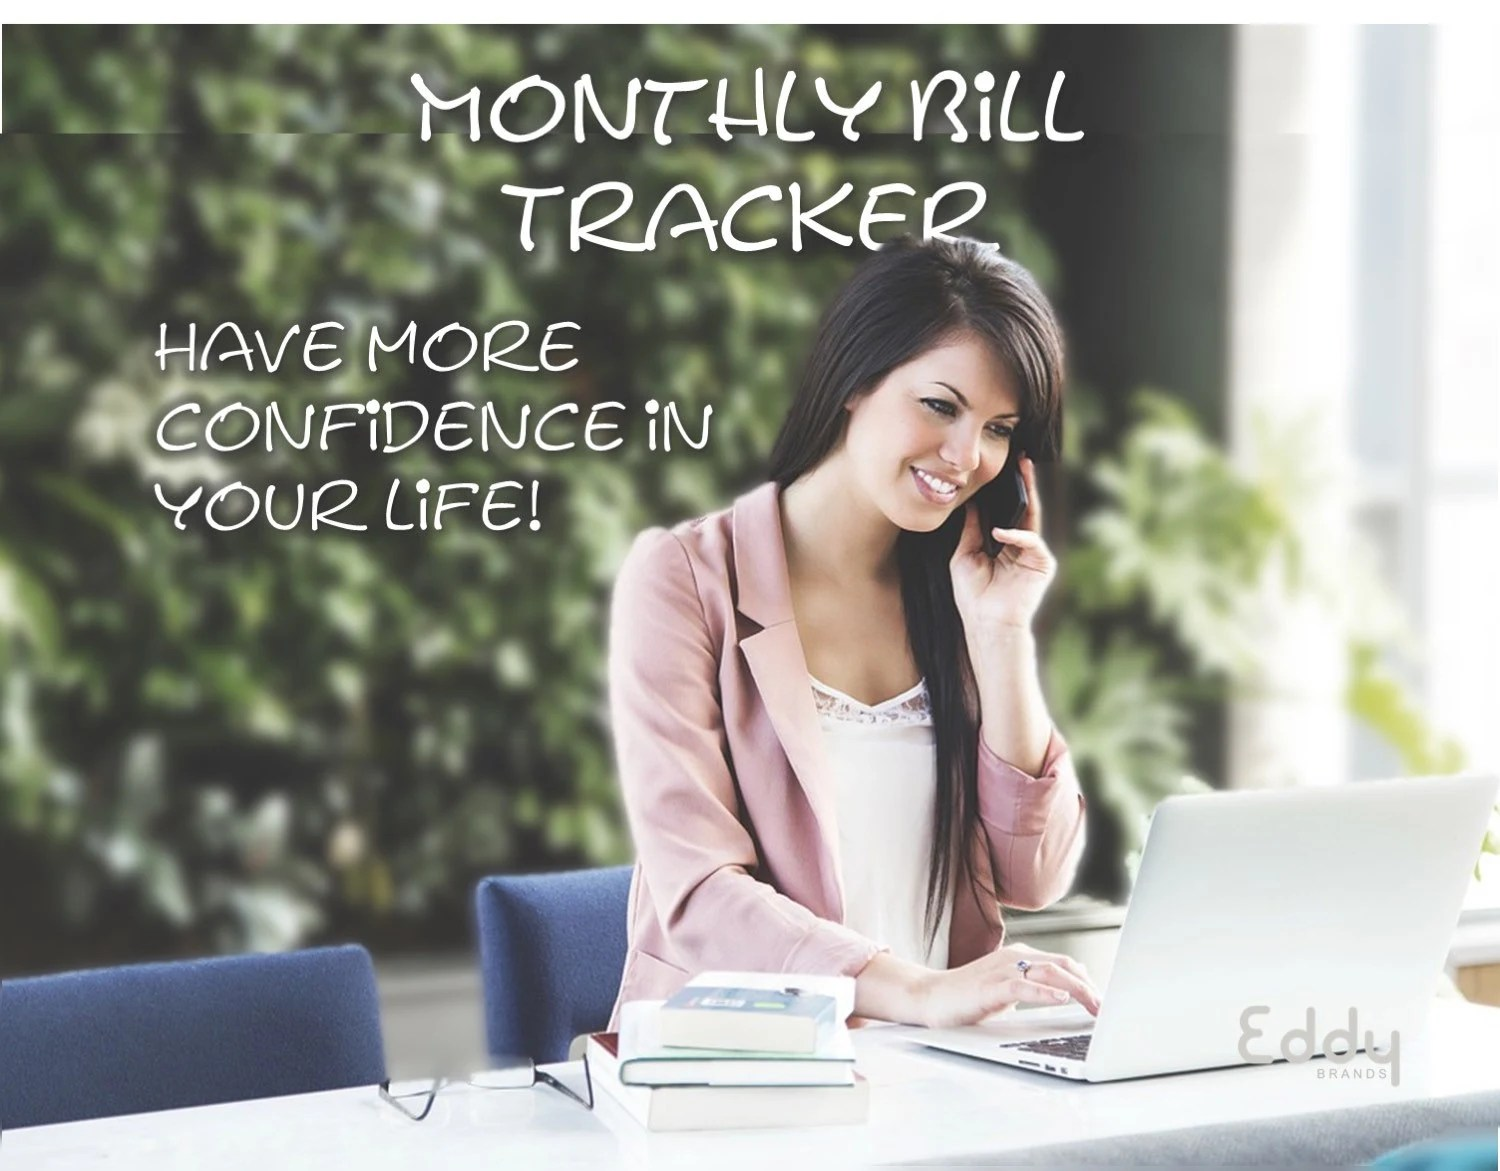 Monthly Bill Tracking Spreadsheet Excel Spreadsheet Template